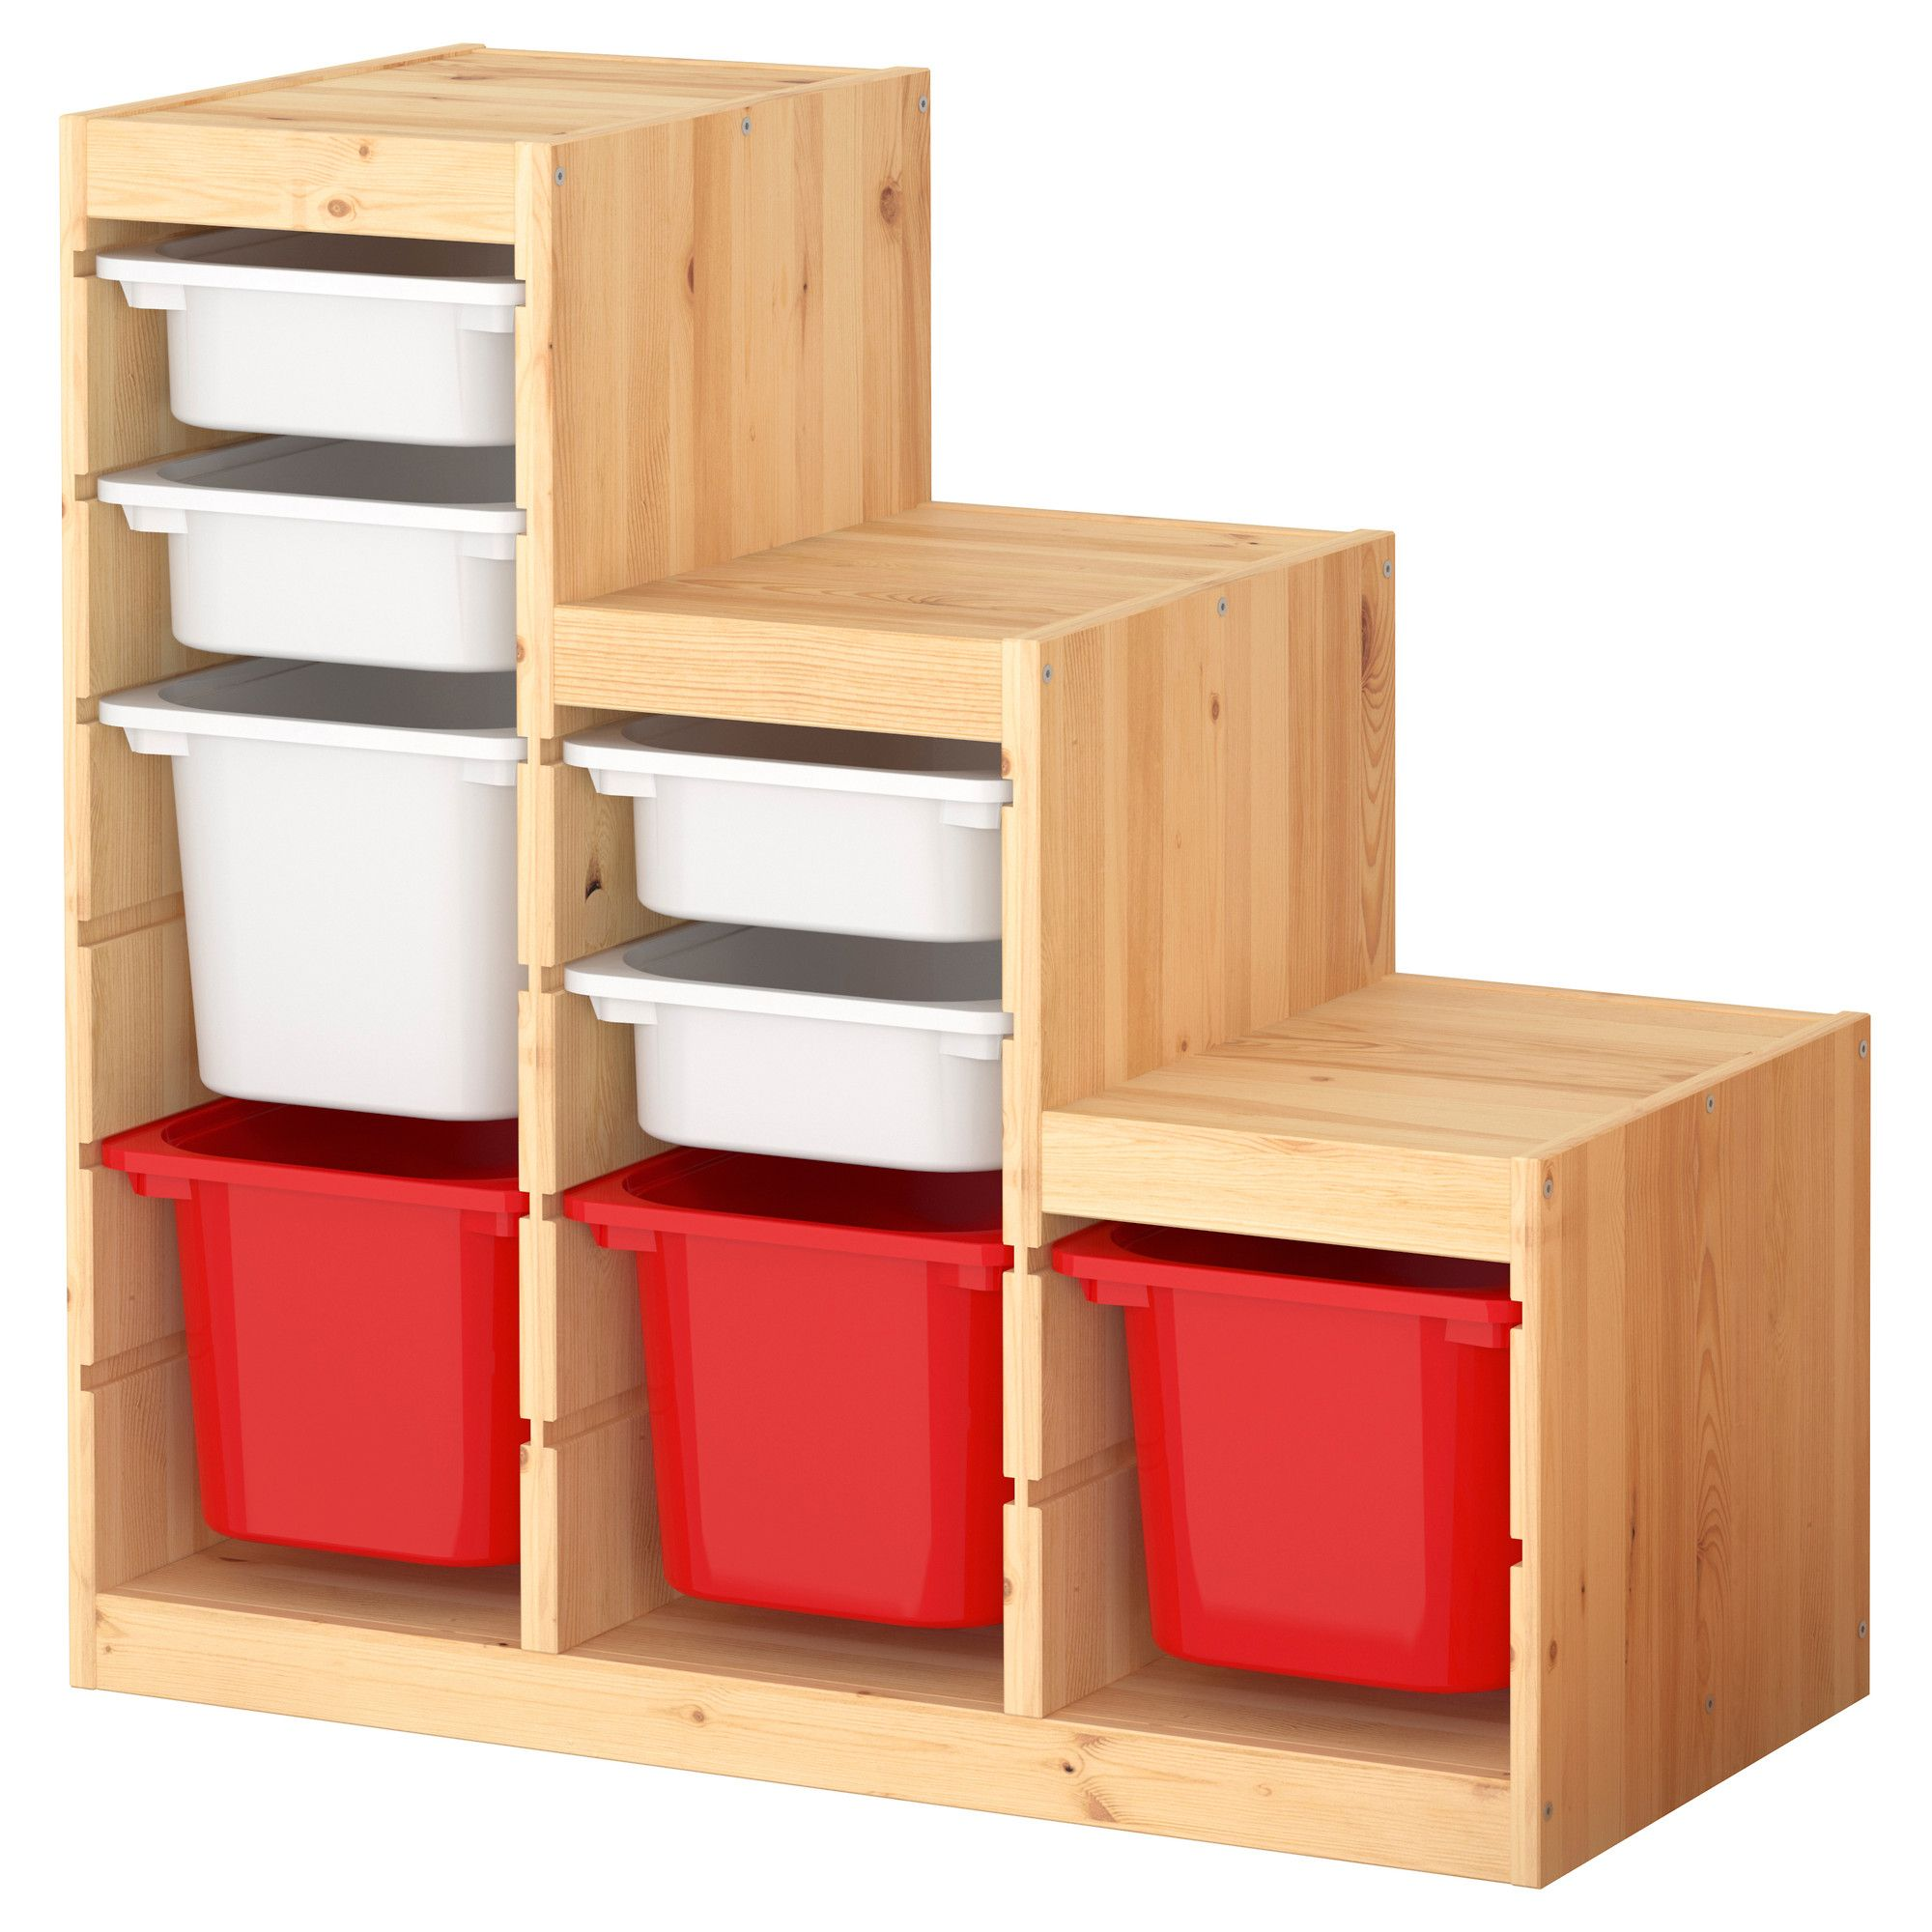 Trofast Storage Combination Ikea Article Number